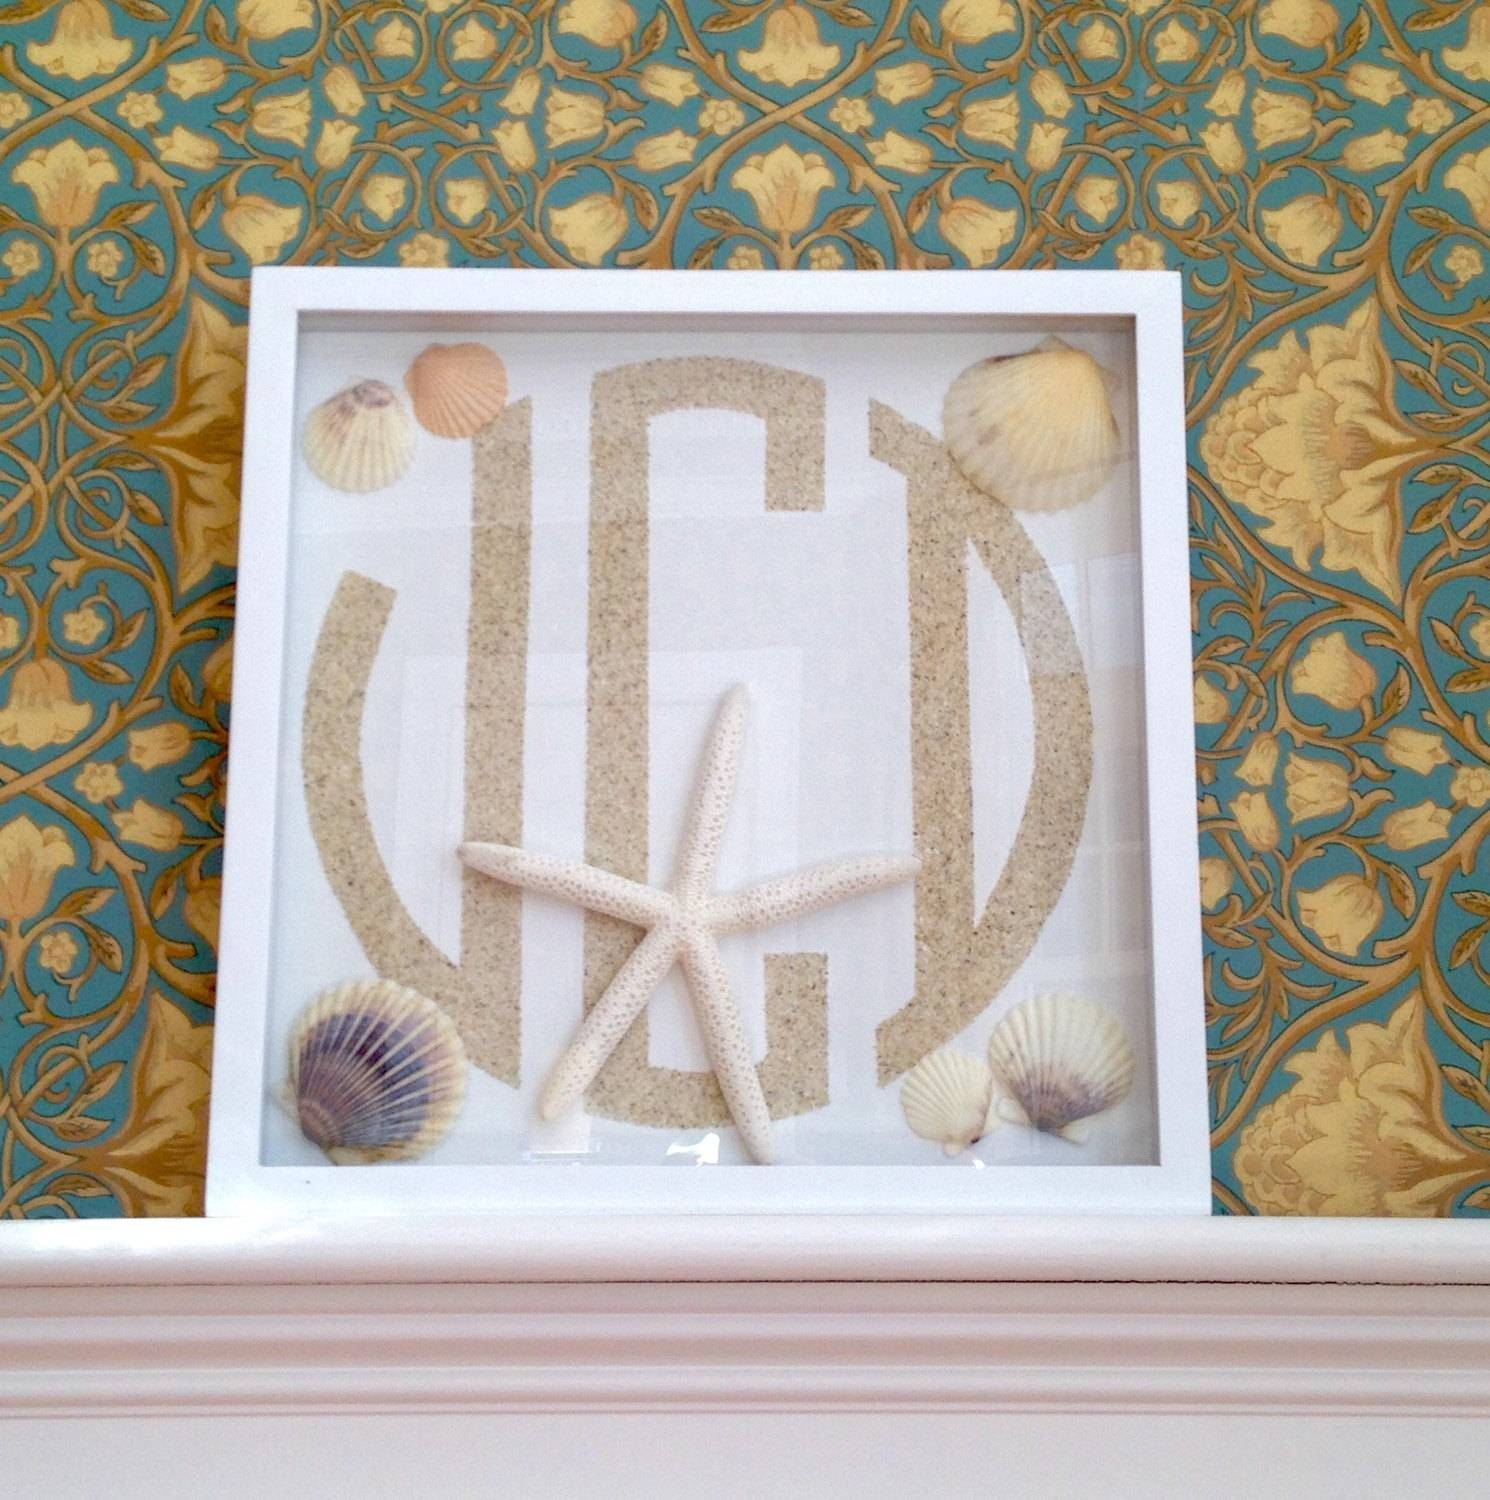 Beach Monogram Framed Monogram Monogram Wall Hanging Beach With Most Popular Framed Monogram : framed monogram wall art - www.pureclipart.com